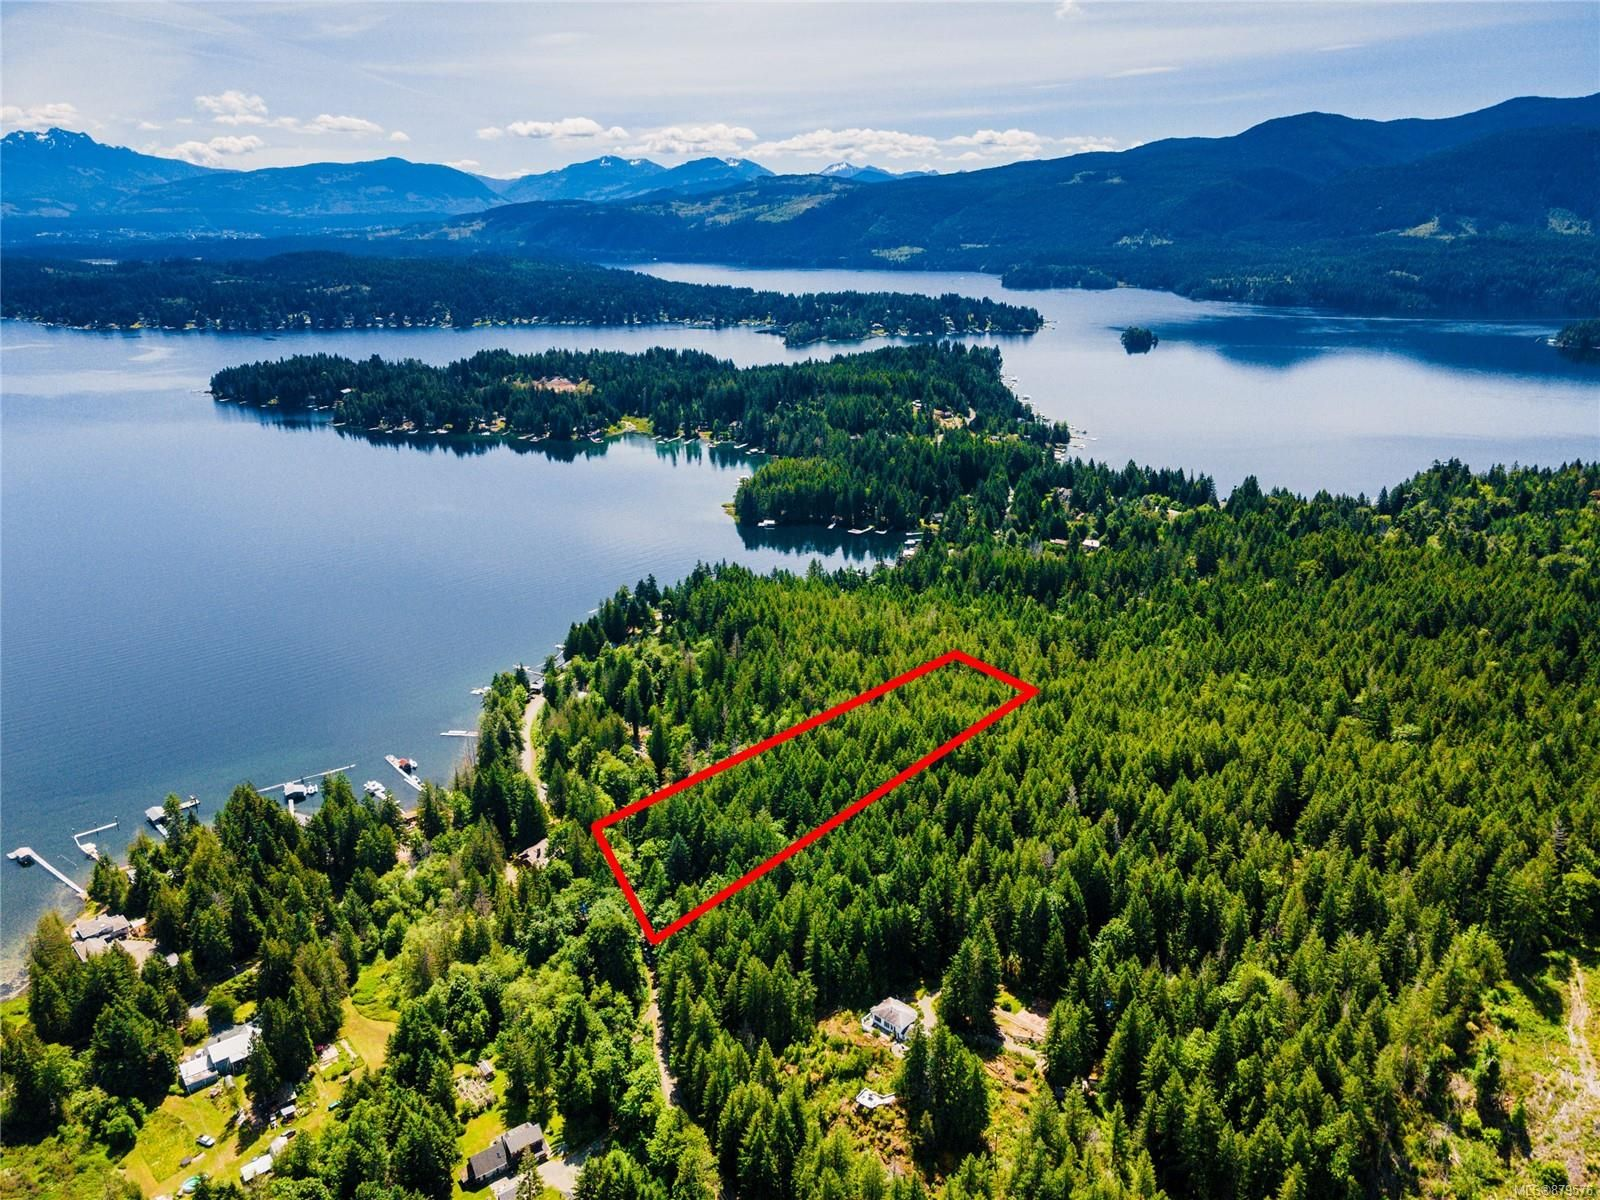 Main Photo: 10630 Tilly Rd in Port Alberni: PA Sproat Lake Land for sale : MLS®# 879576